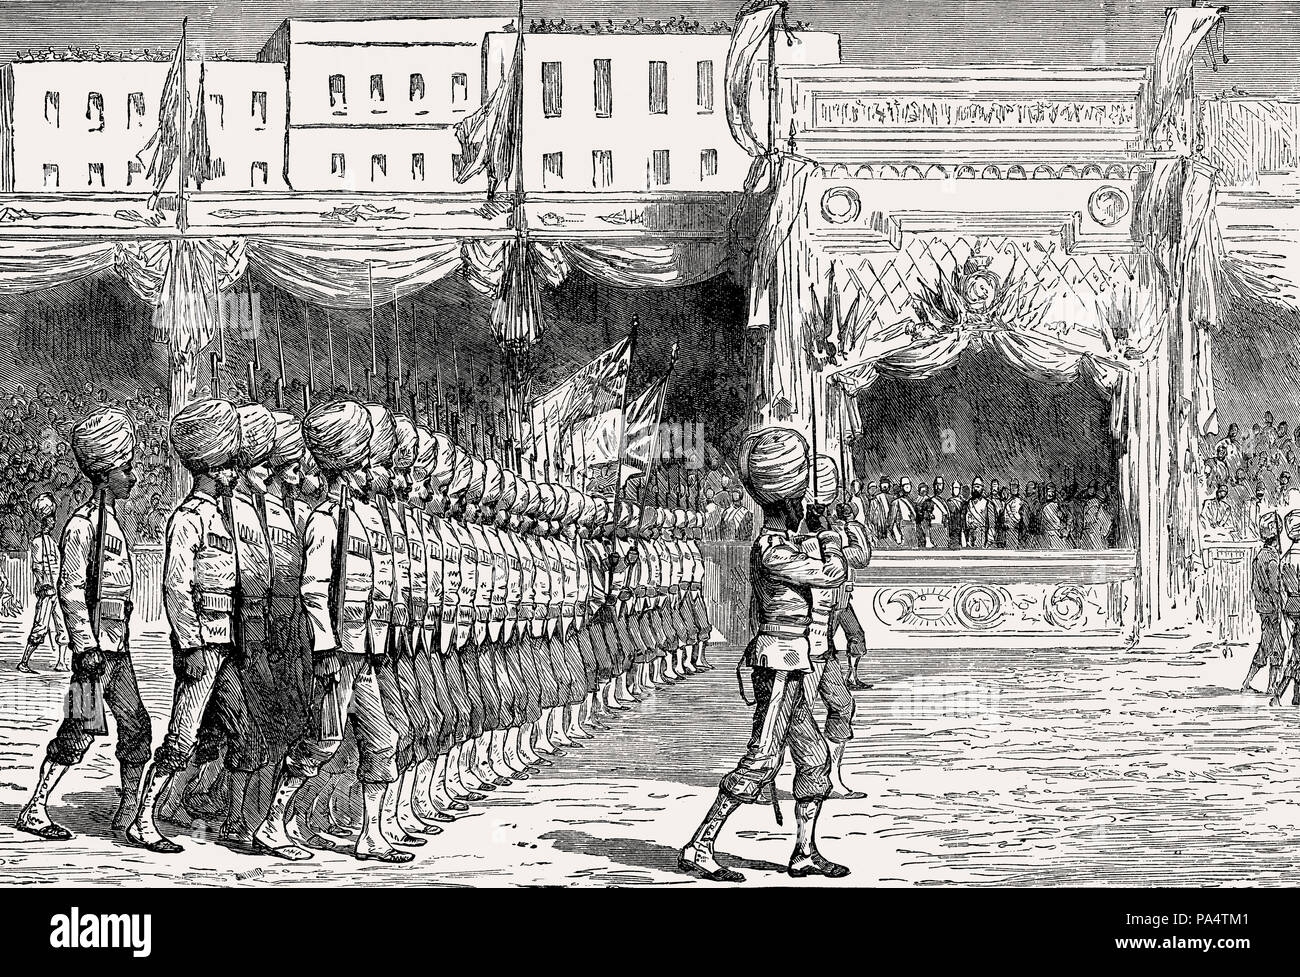 The British Indian Army at Cairo, British invasion in 1882, From British Battles on Land and Sea, by James Grant - Stock Image